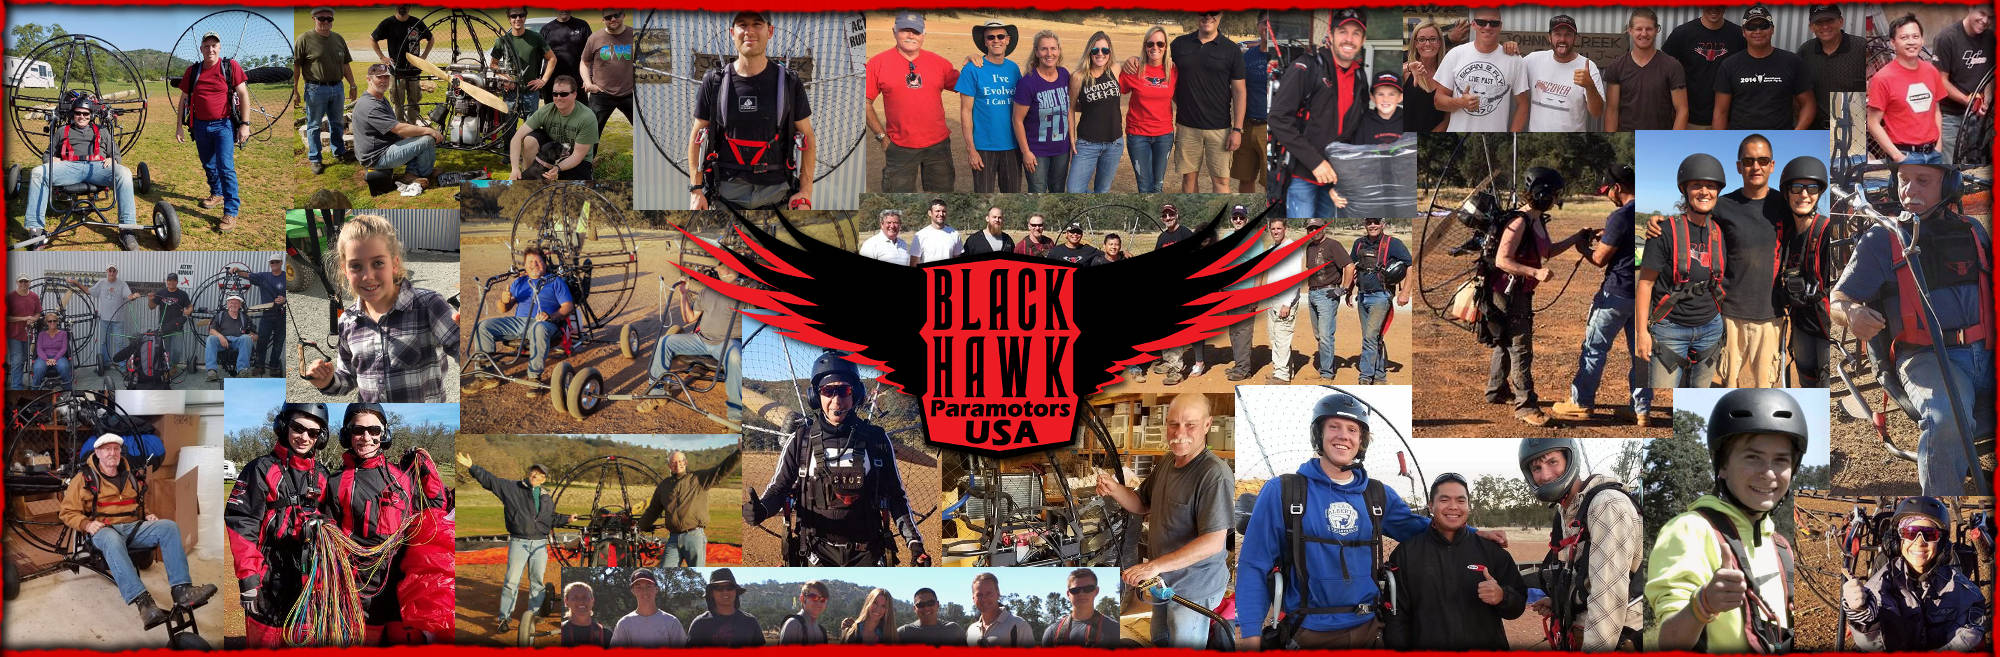 Paramotor Lessons With BlackHawk Paramotors USA - The #1 Training Experience!